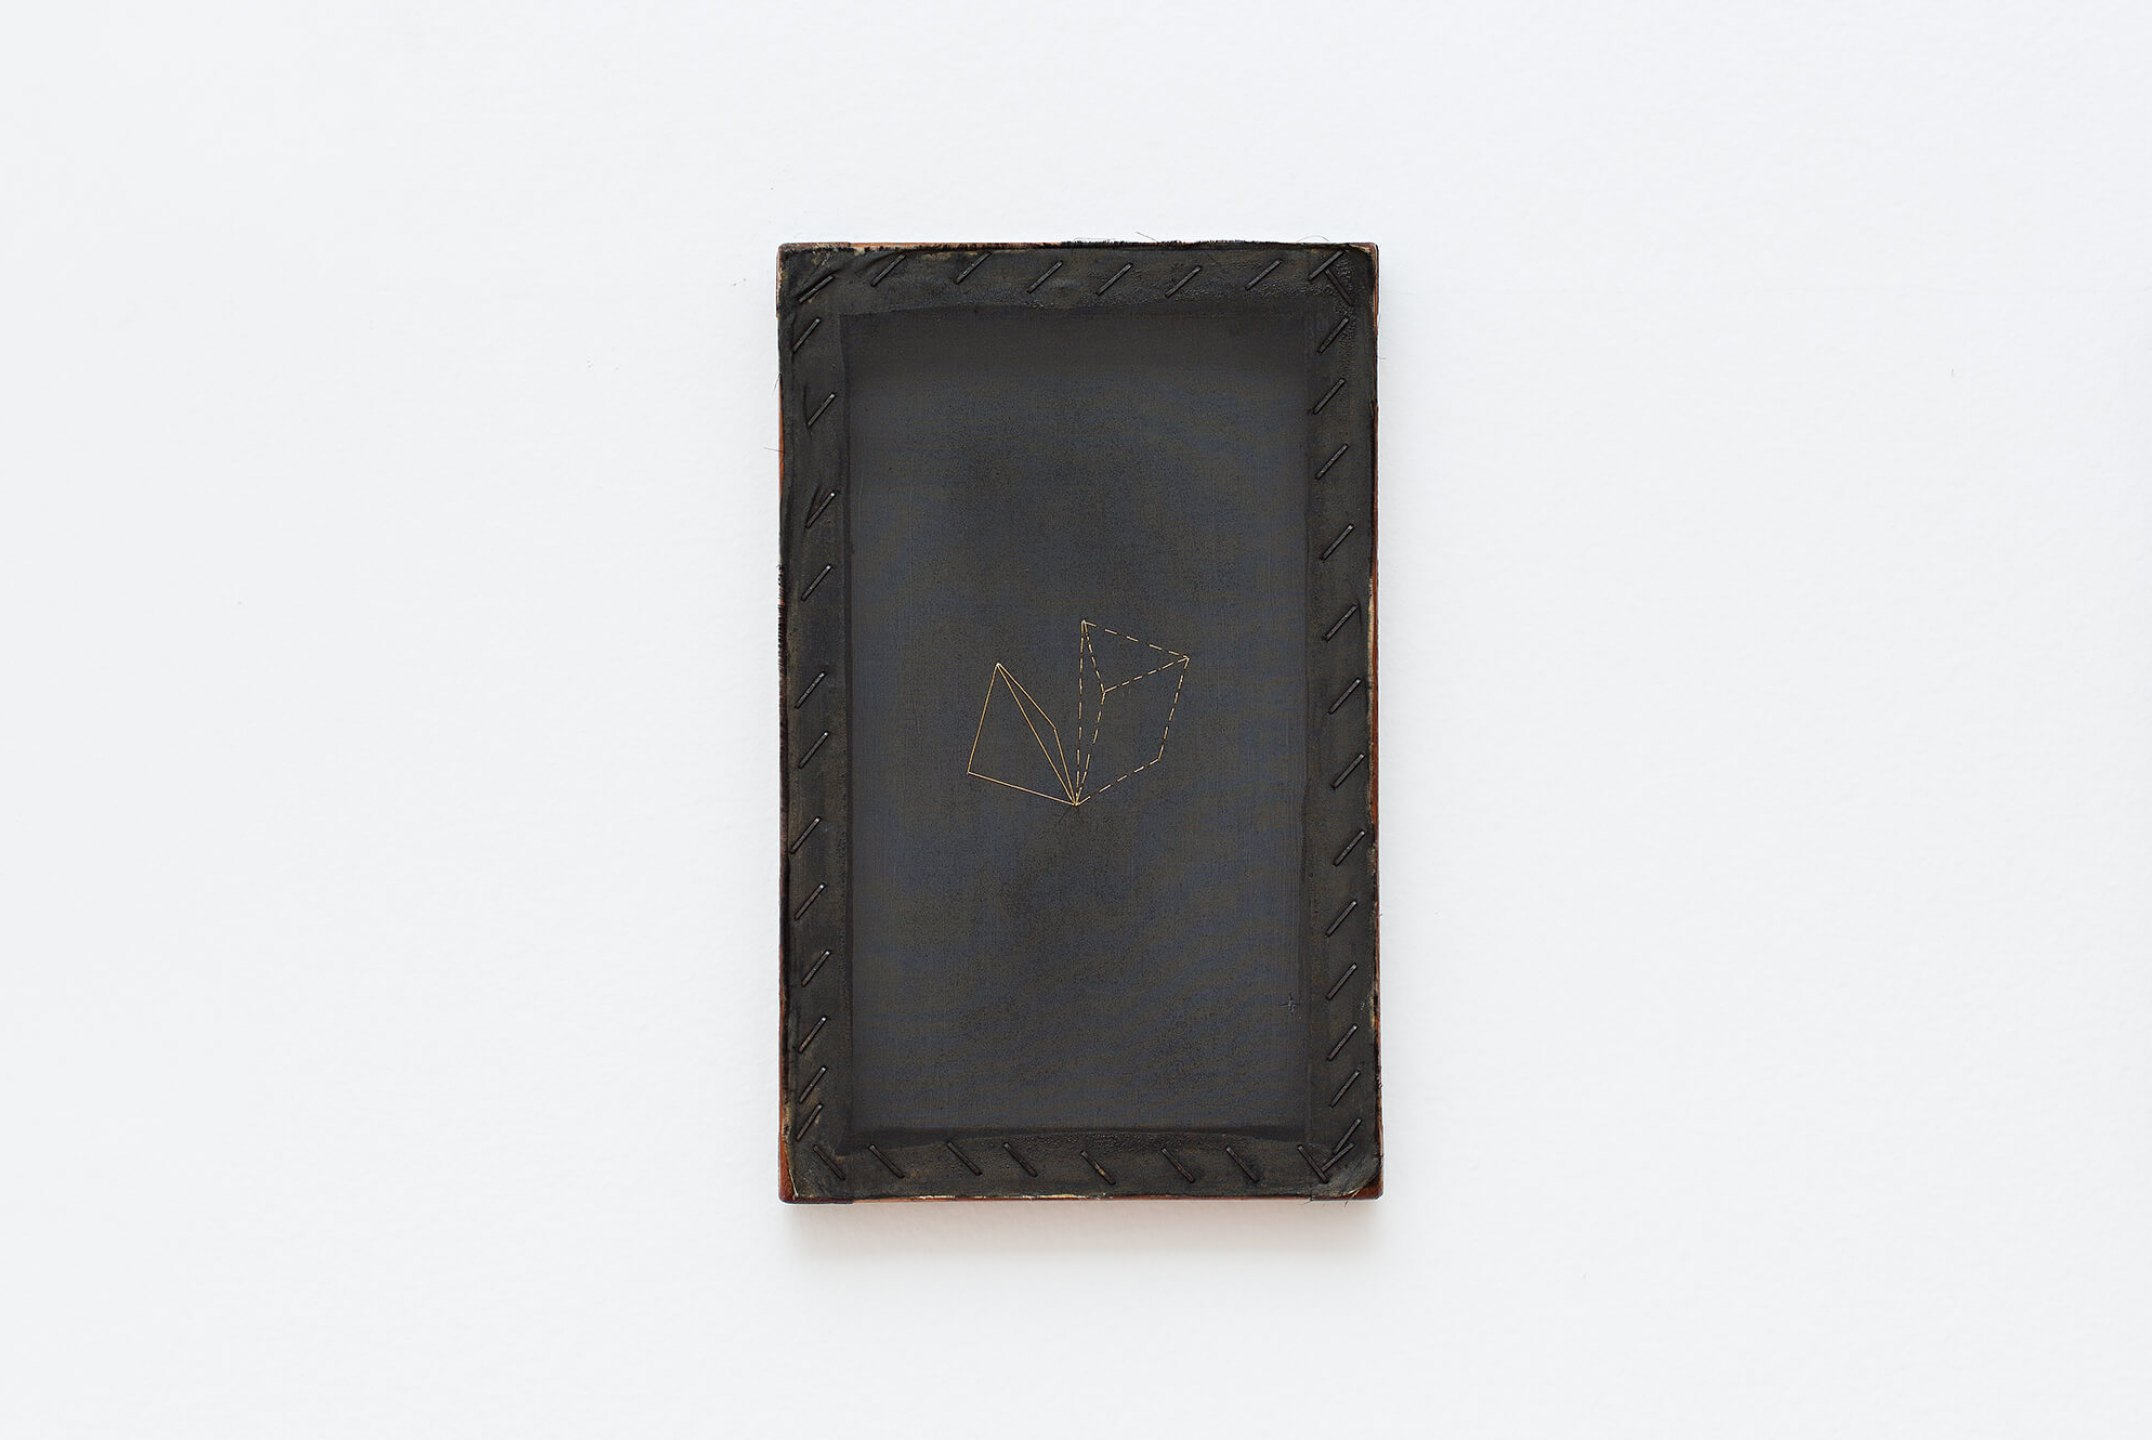 Paloma Bosquê, <em>Dreams</em>, 2014, nankin and lurex threads on canvas, 26,5 × 16,5 cm - Mendes Wood DM